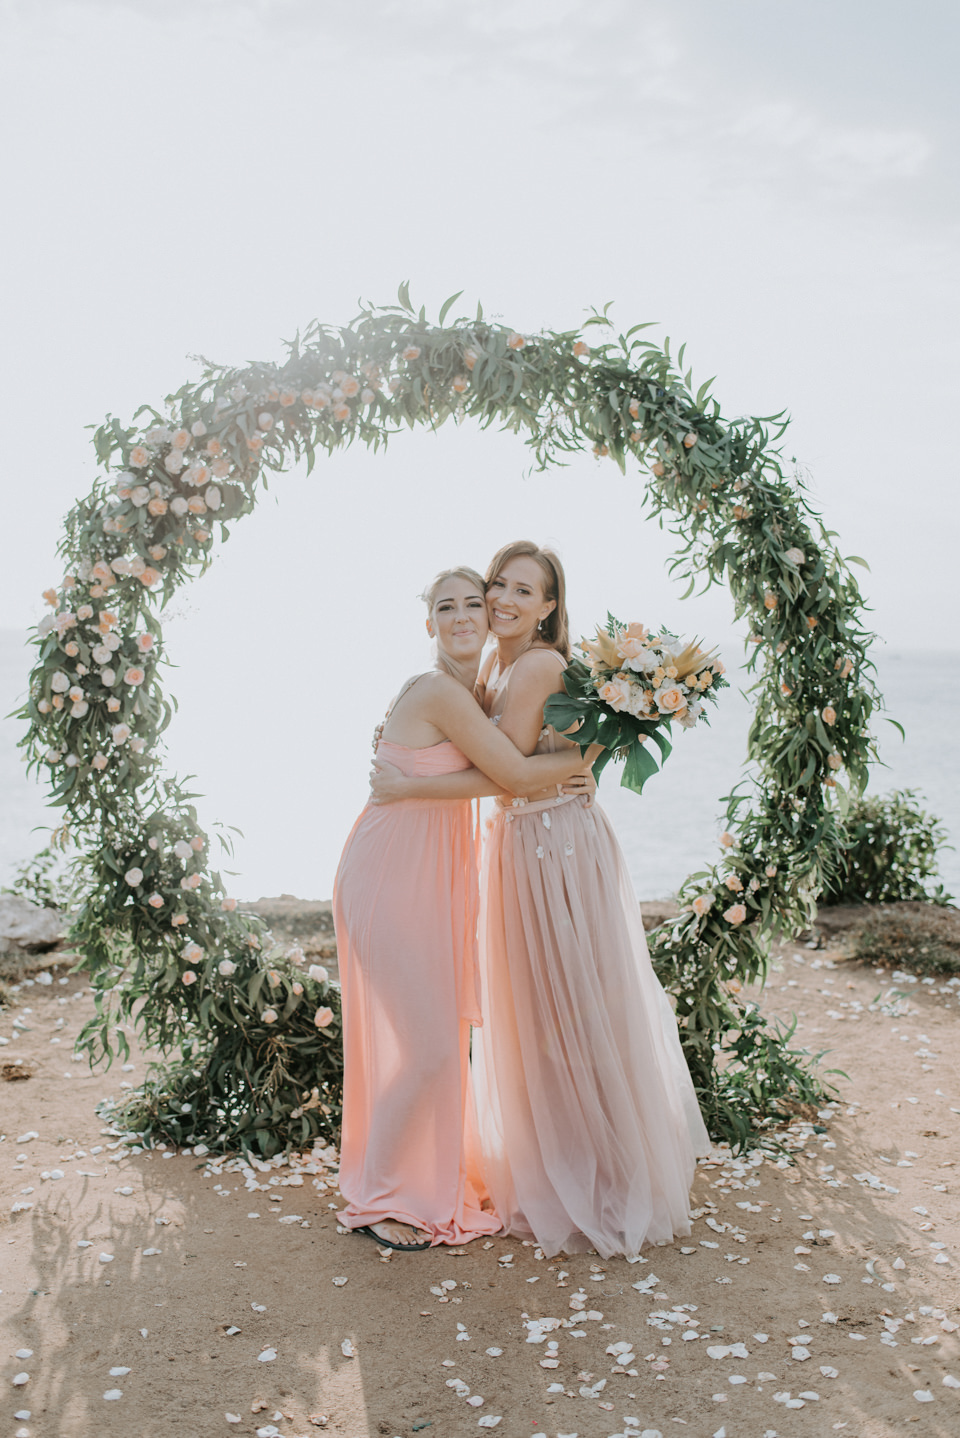 The bride with the bride to be